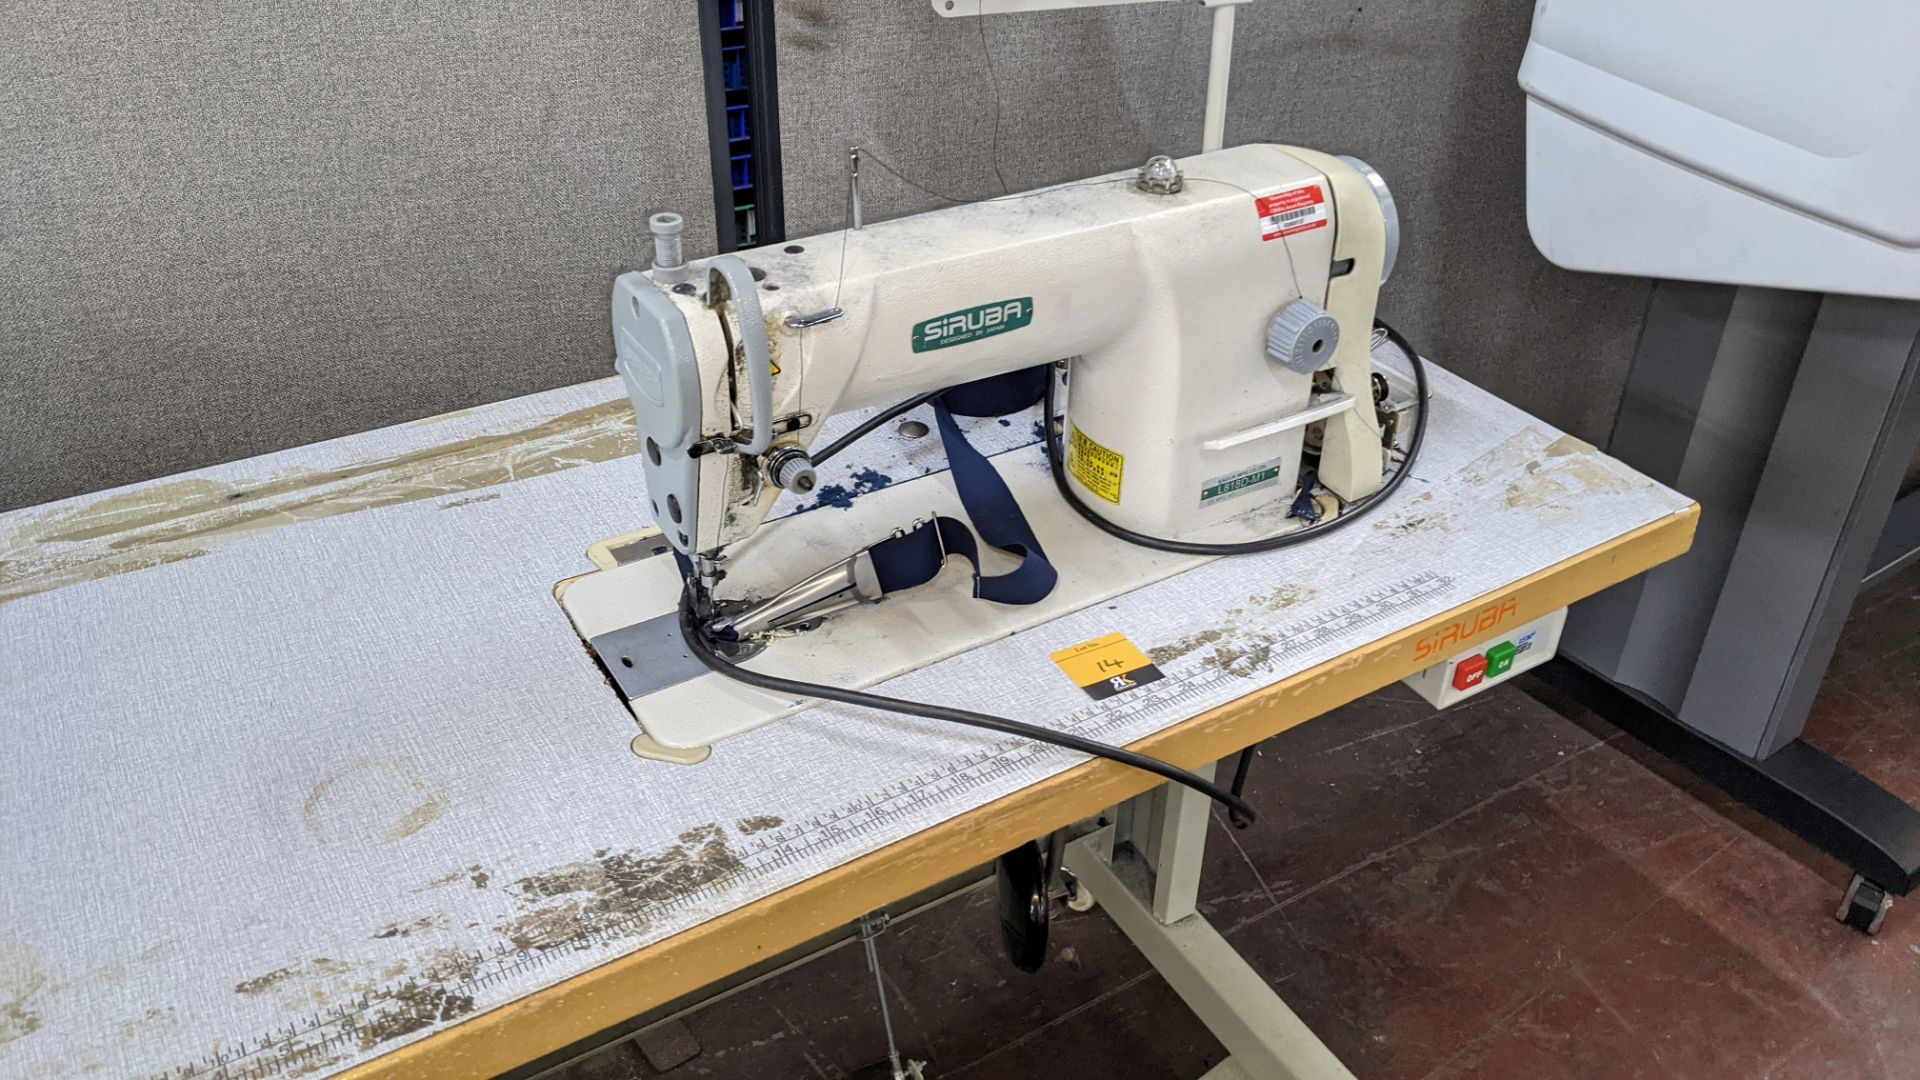 Siruba sewing machine, model L818D-M1, with edge band guide - Image 4 of 13